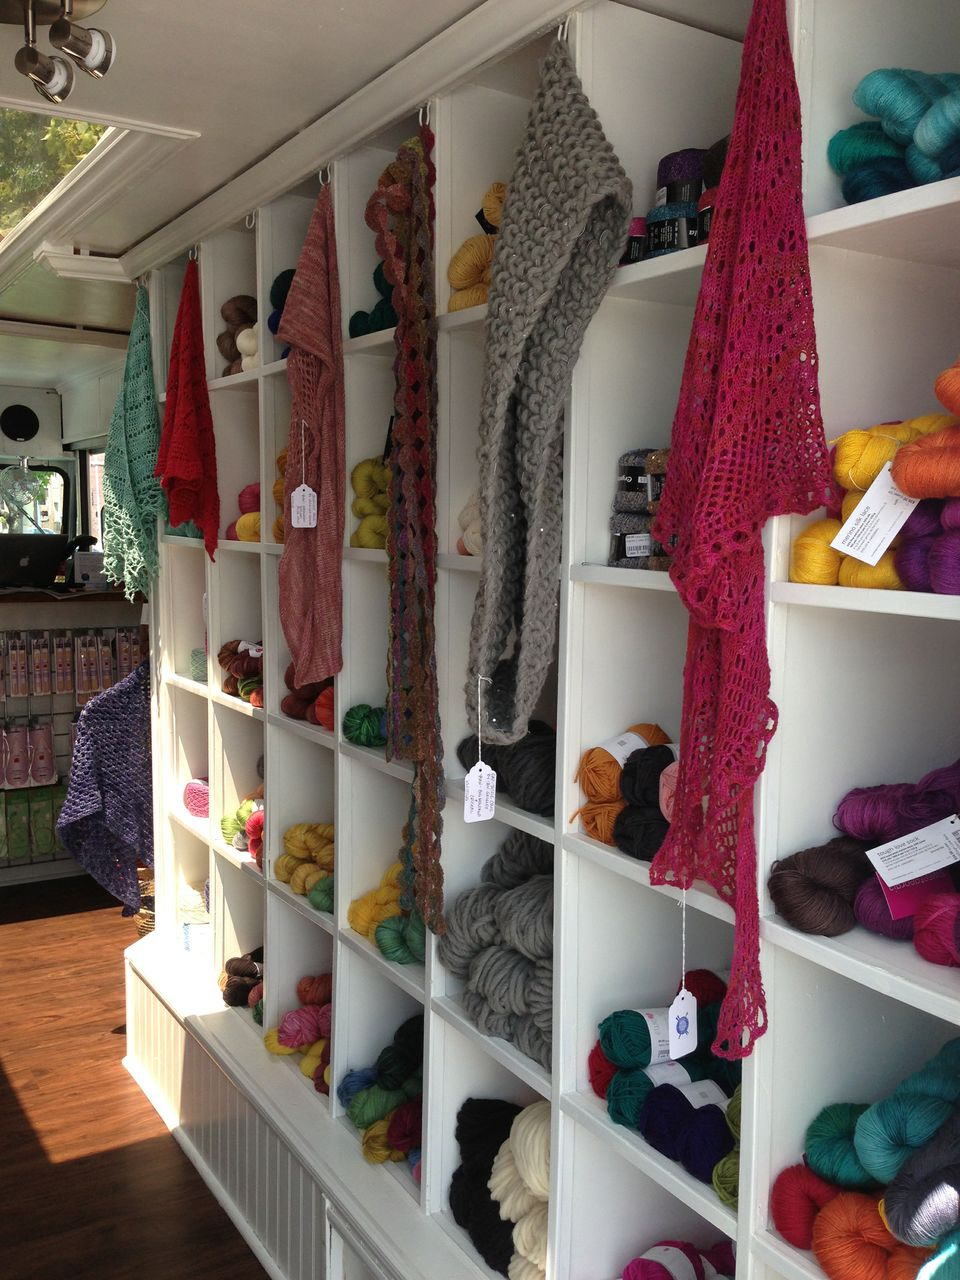 Shelves of Yarn and Knit Scarves Inside the Yarnover Truck